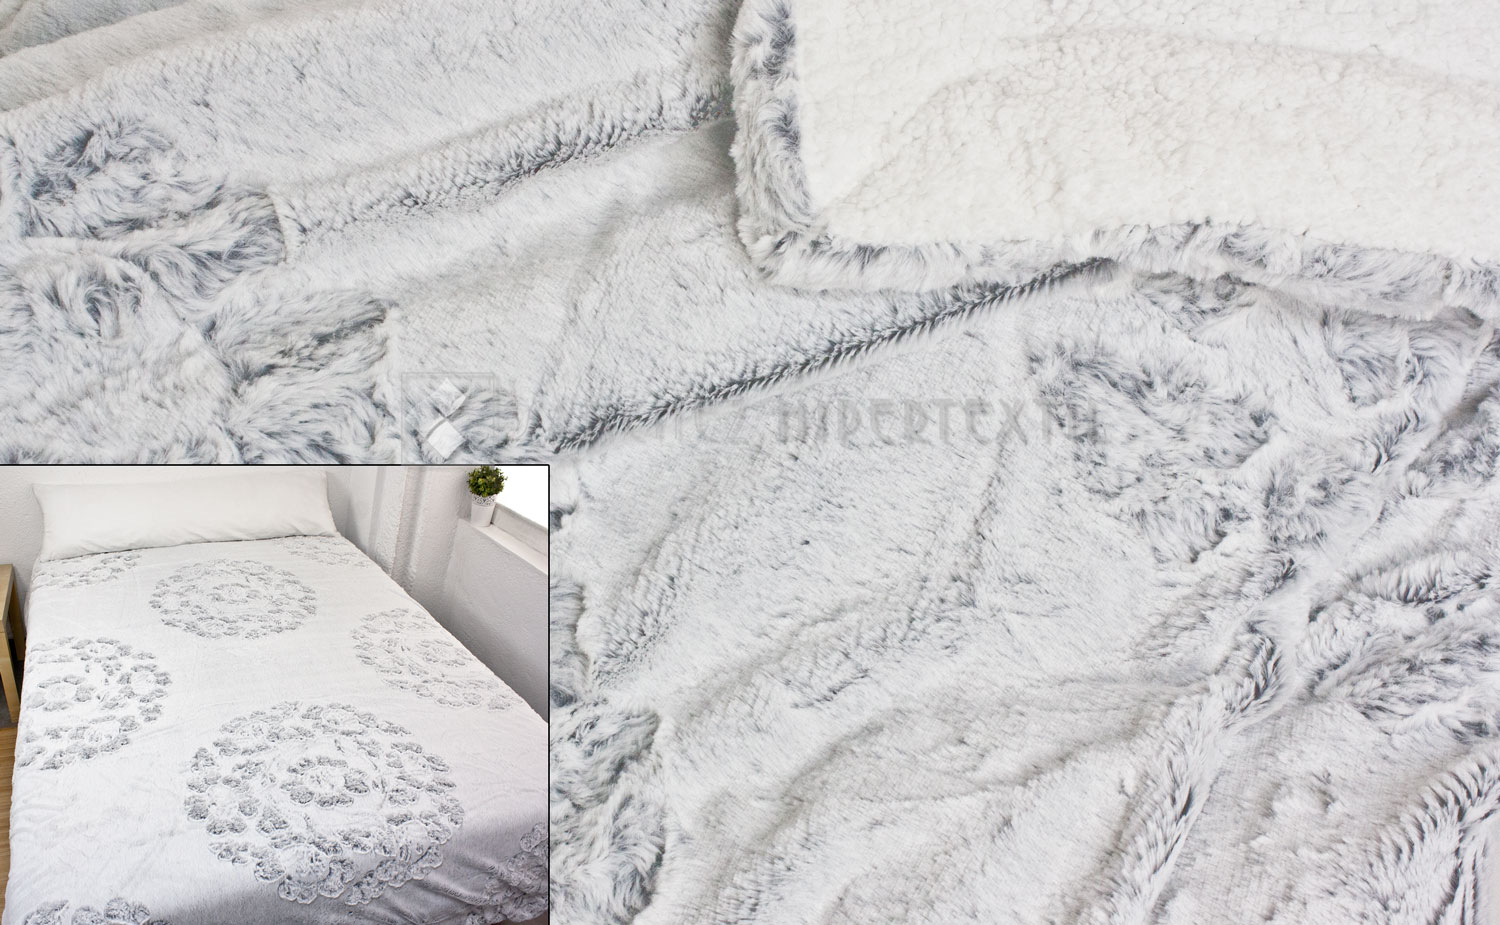 Quilt / Blanket VISON SHERPA WHITE / GRAY 220x240 for 135/150 cm bed.